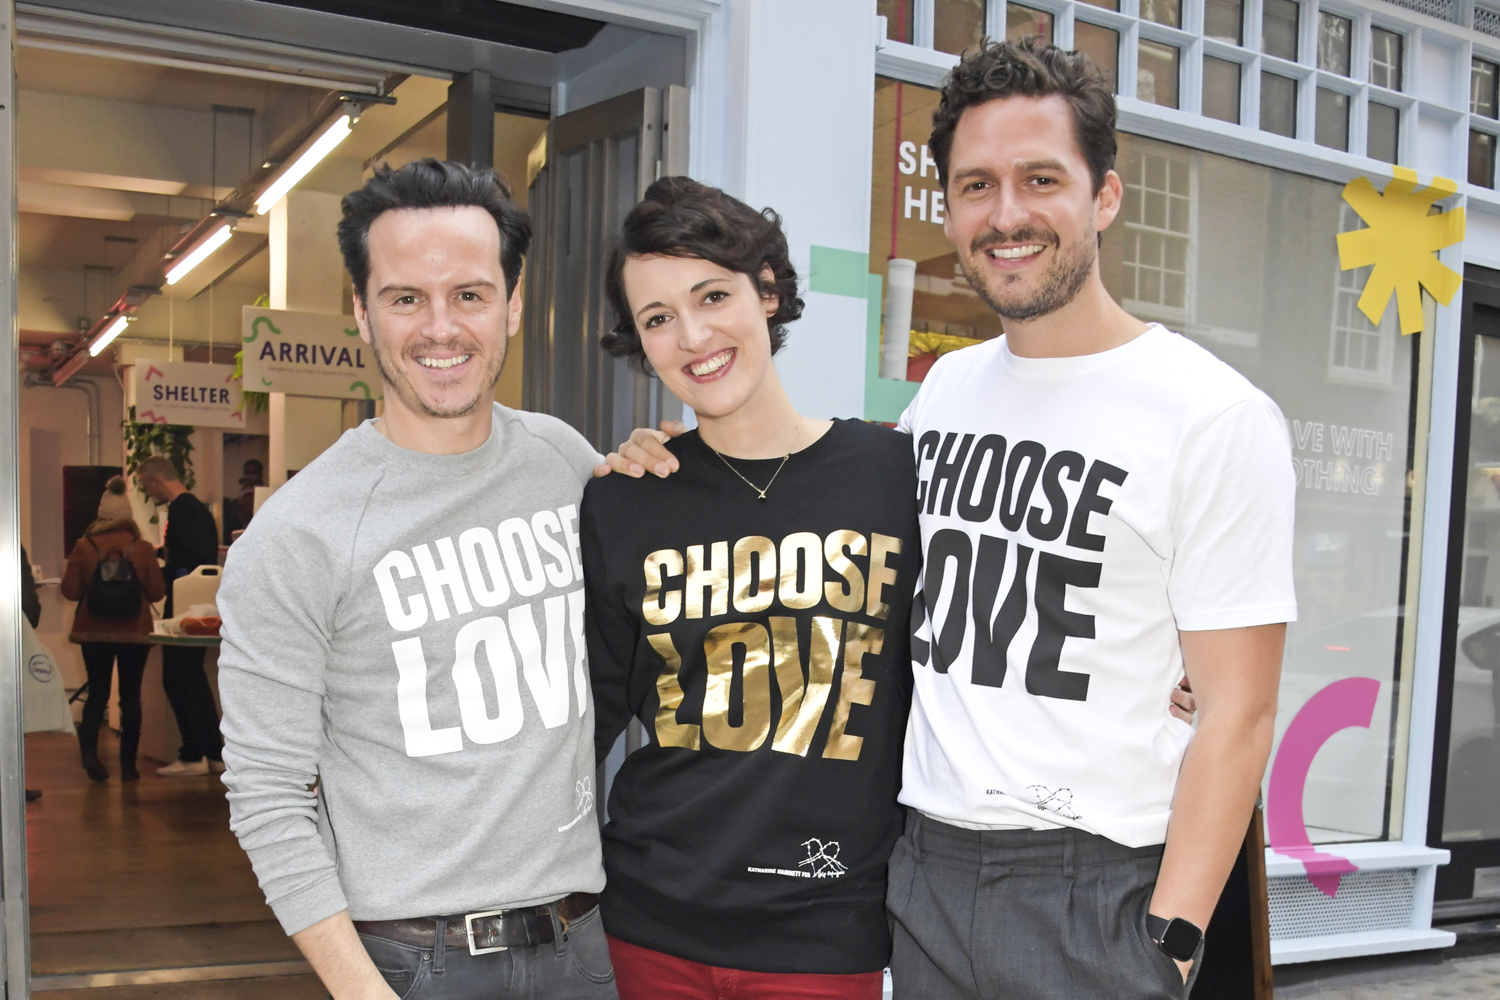 Andrew Scott, Phoebe Waller-Bridge and Ben Aldridge